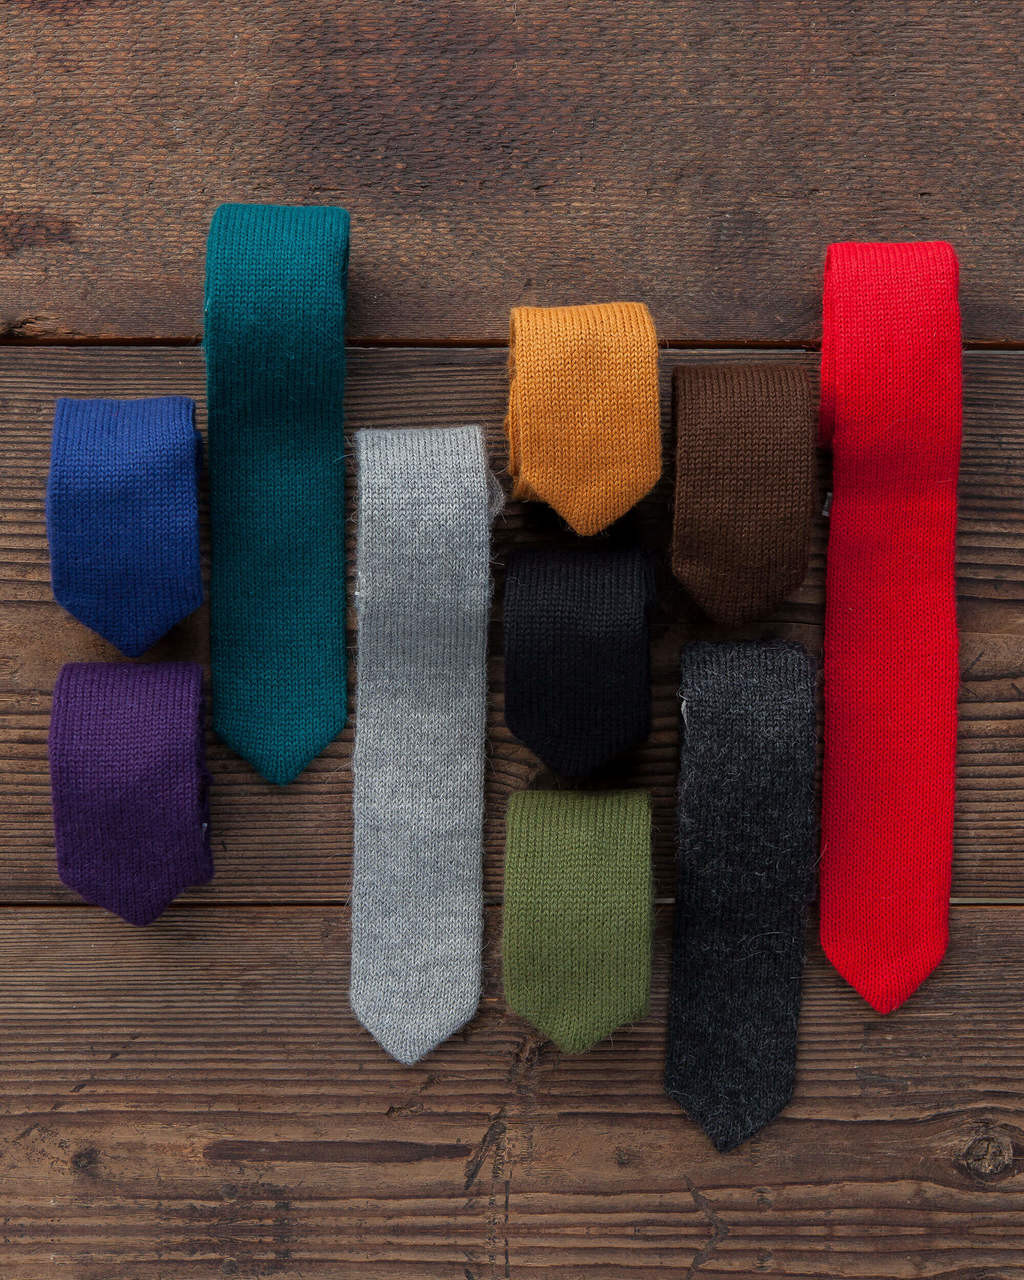 Alicia Adams Alpaca 100% Baby Alpaca Multi Color Mens Kids Necktie Tie Menswear Sustainable Natural Father's Day Gift Gift for Dad Stocking Stuffer Handmade in Peru